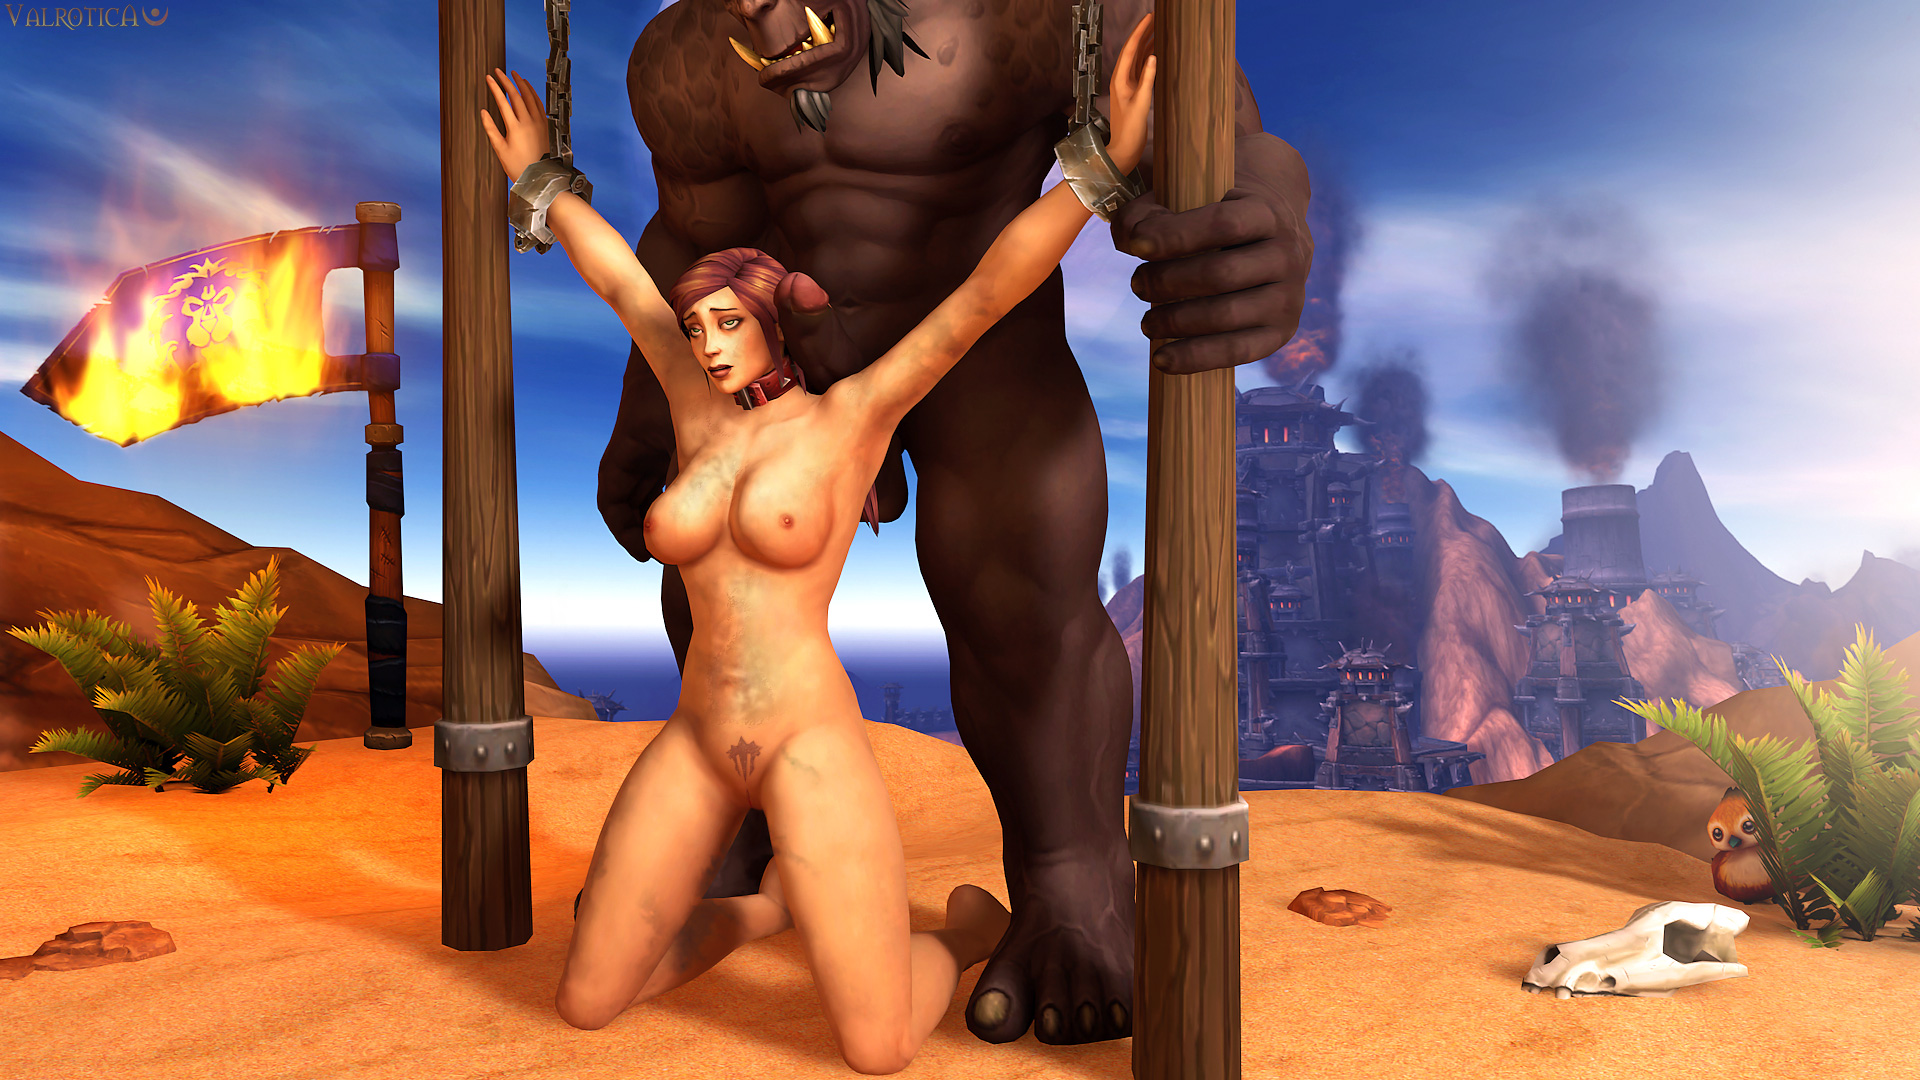 World of warcraft porno beach hot girls porn film